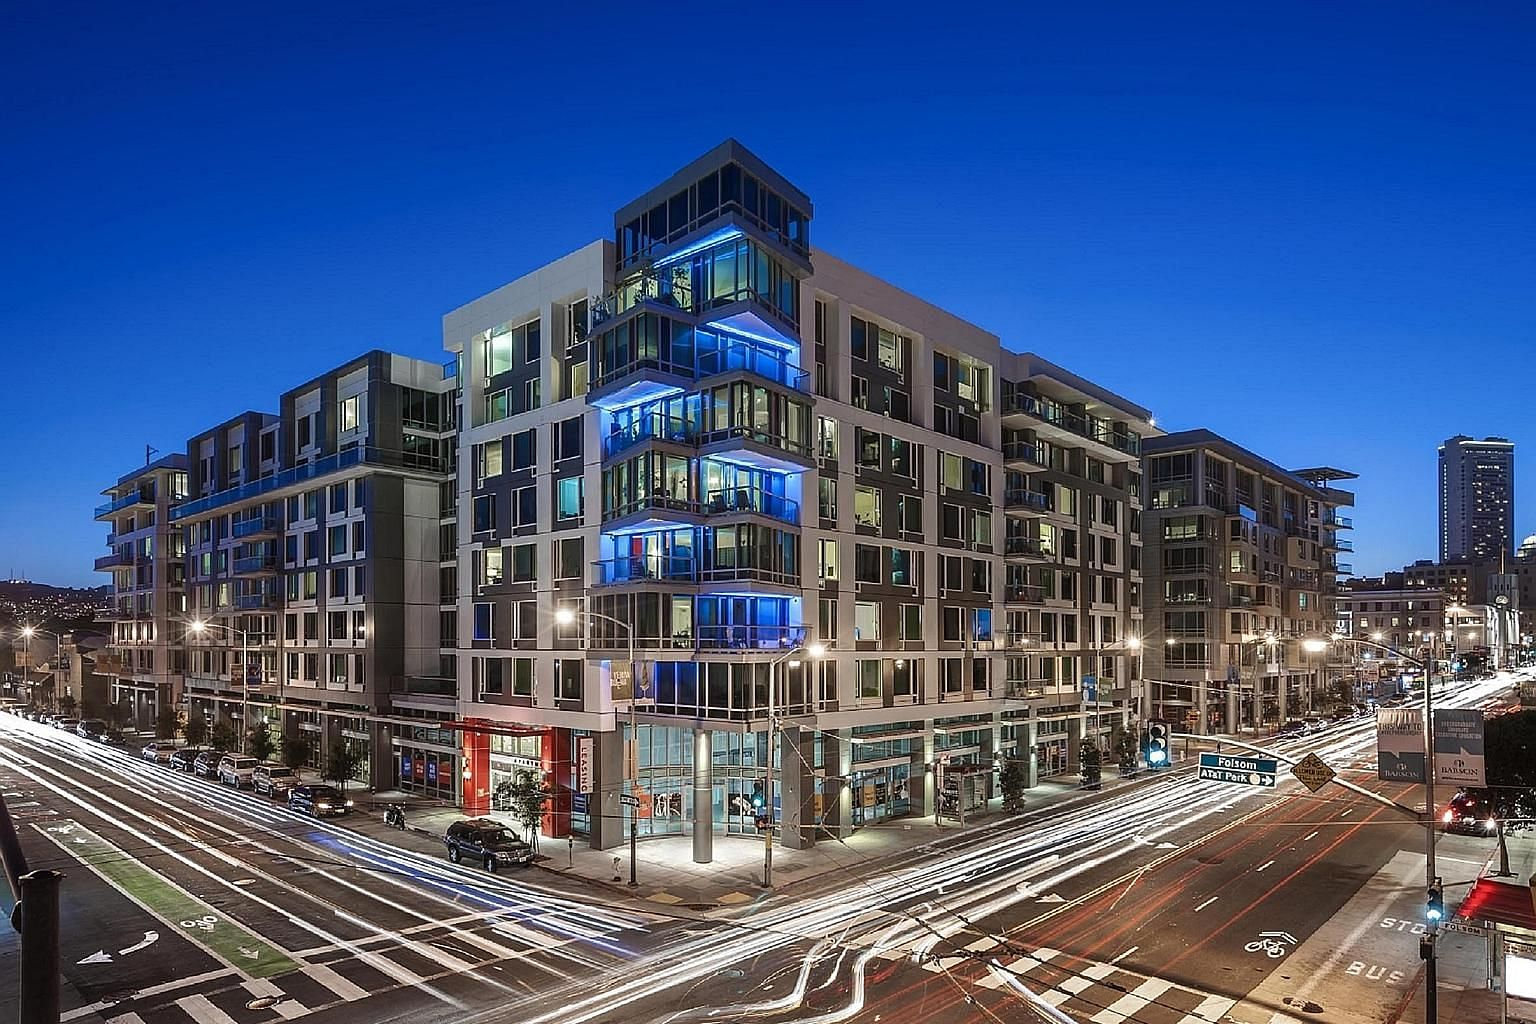 Mosso apartments in San Francisco, one of Synergy Global Housing's properties. The Ascott acquired an 80 per cent stake in Synergy for S$45.9 million.